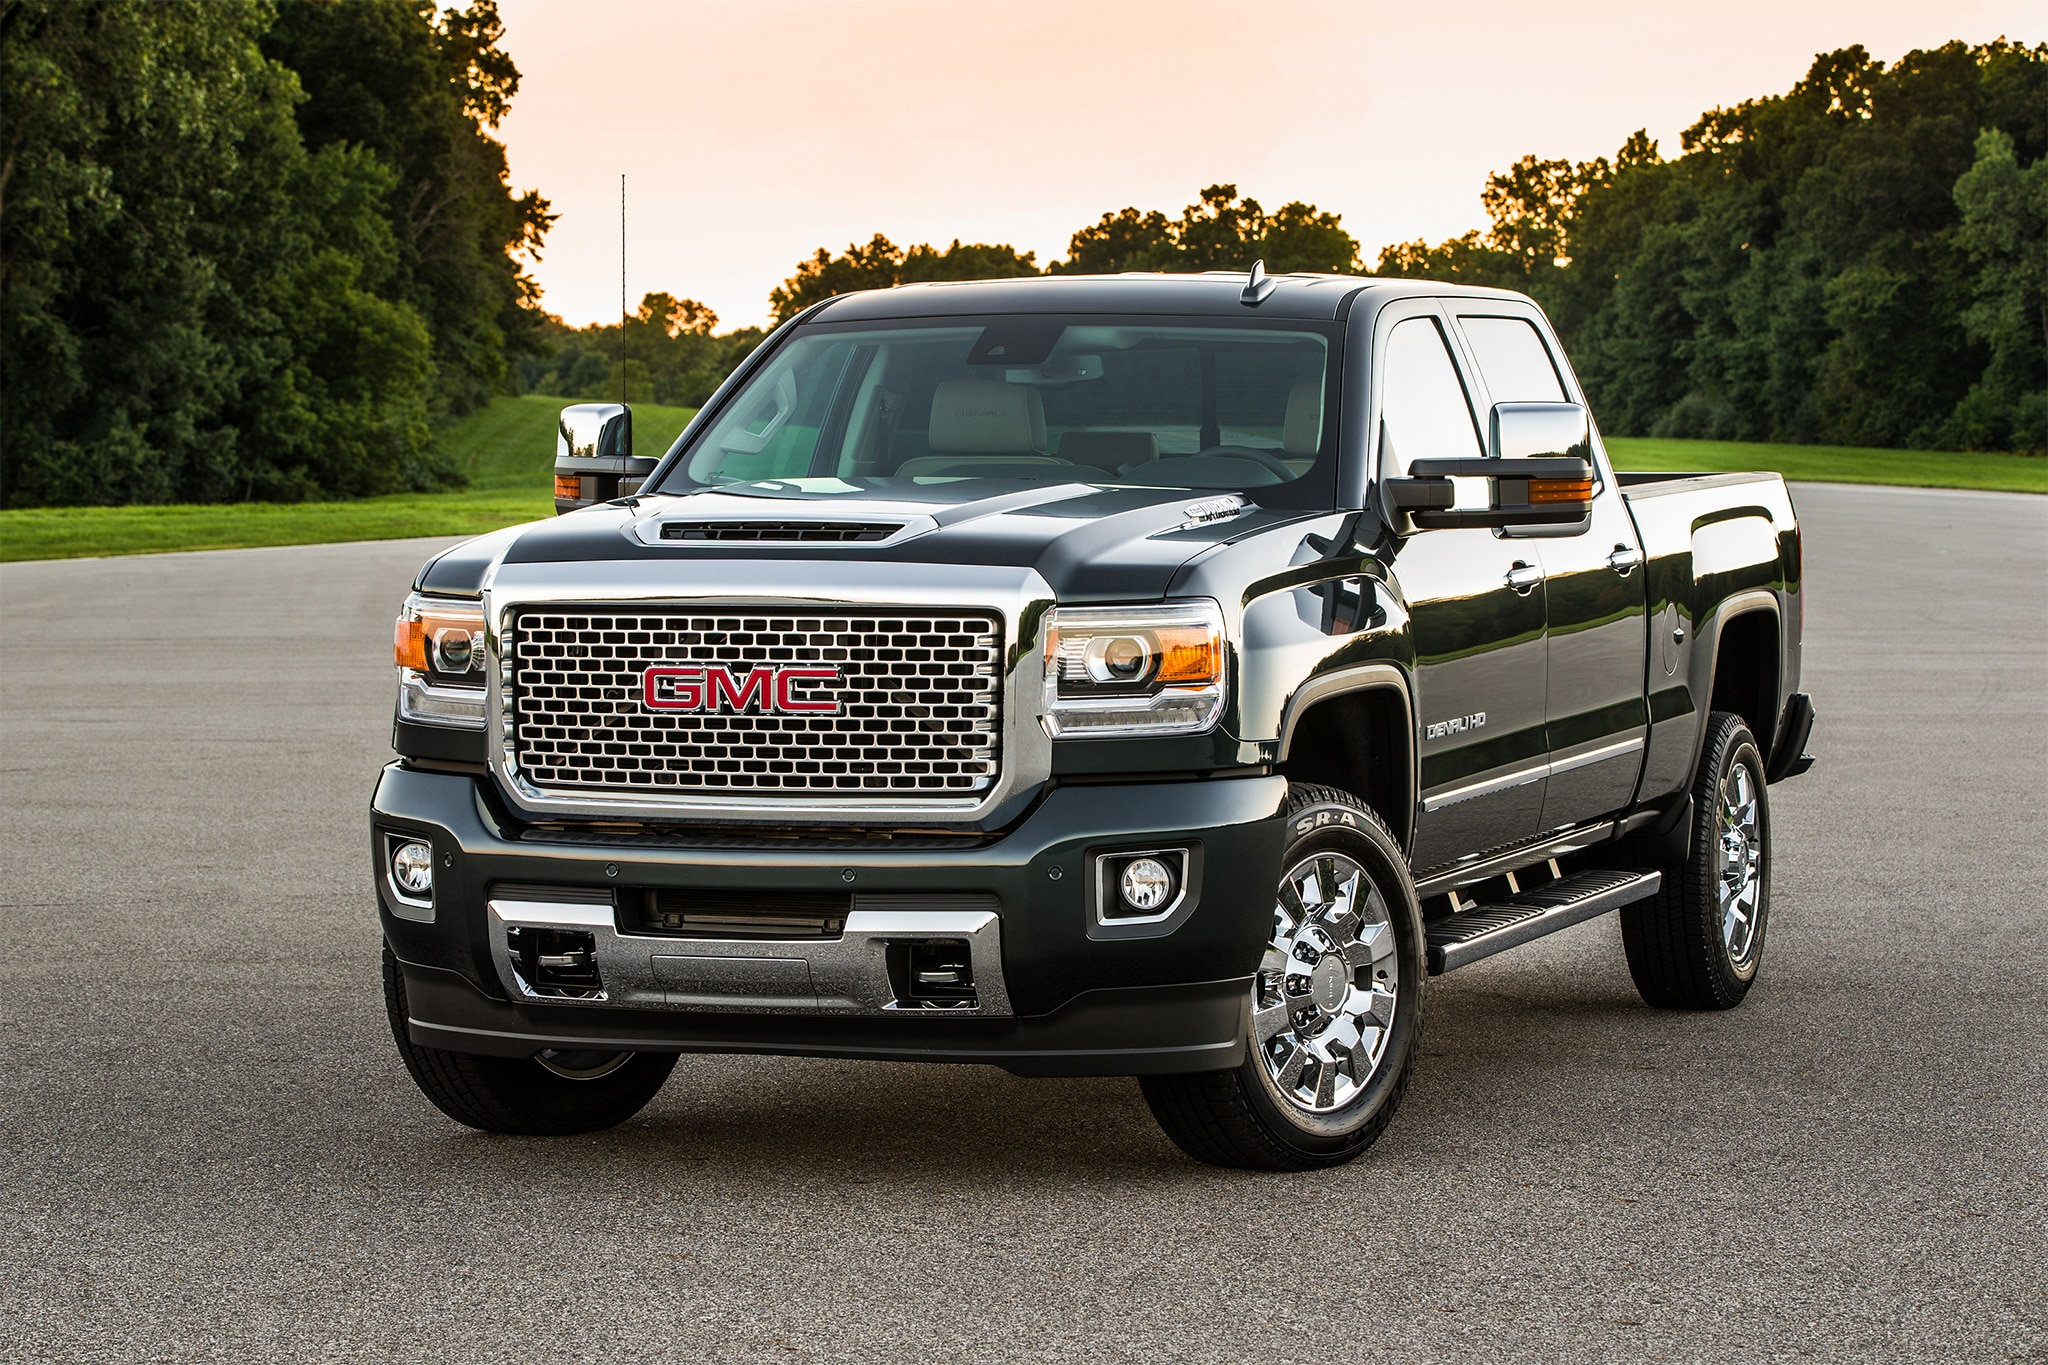 2017 GMC Sierra Denali 2500HD front three quarter 02 chevy and ram score a grand slam at the 2016 state fair of texas  at money-cpm.com